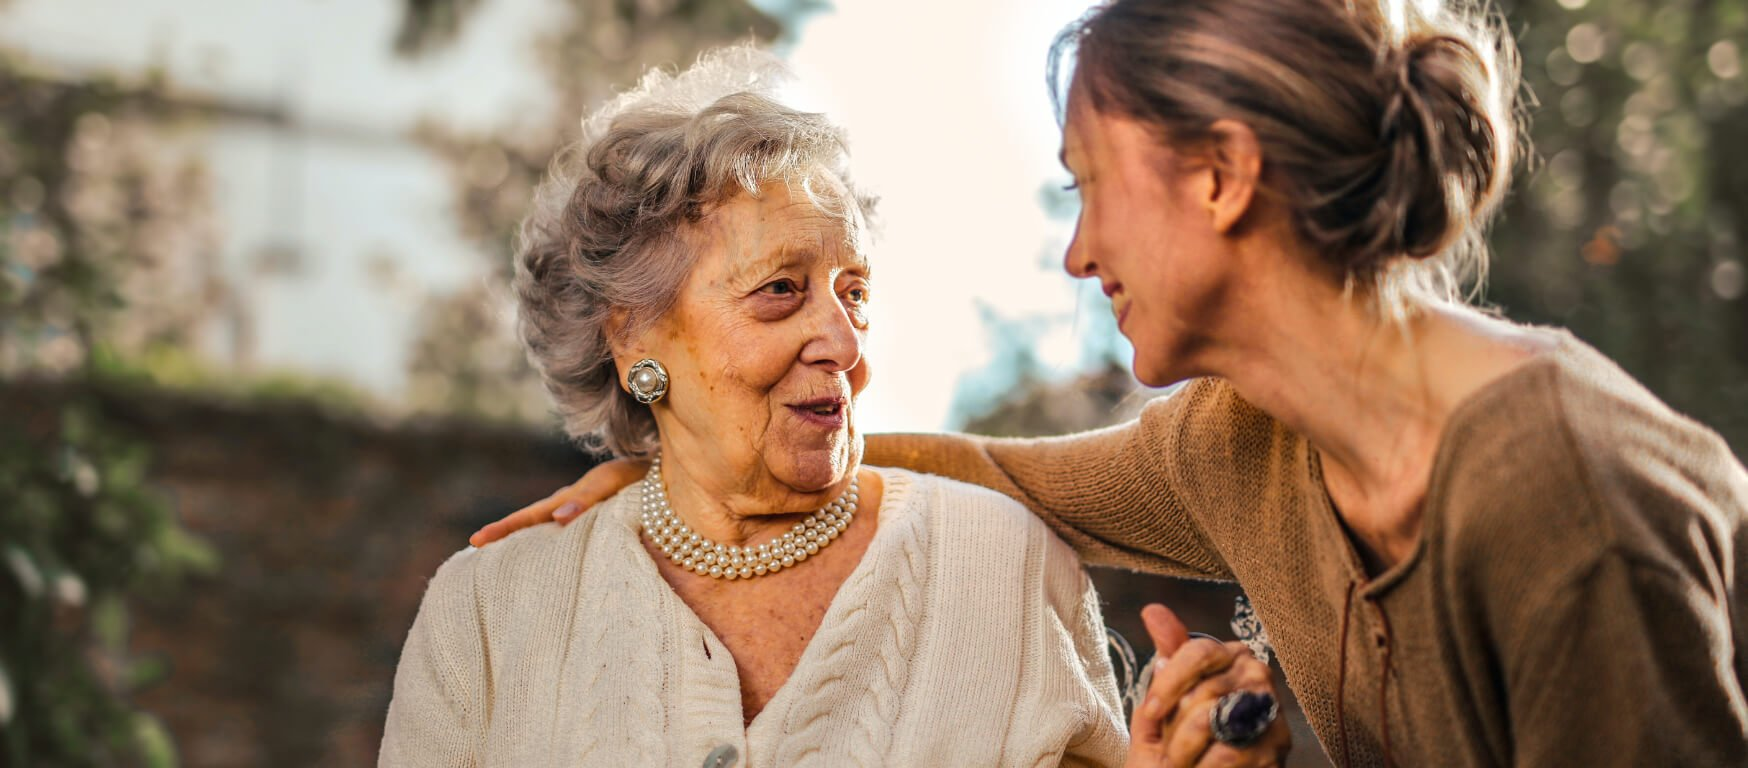 Moving to Community Care or a Long Term Care Facility